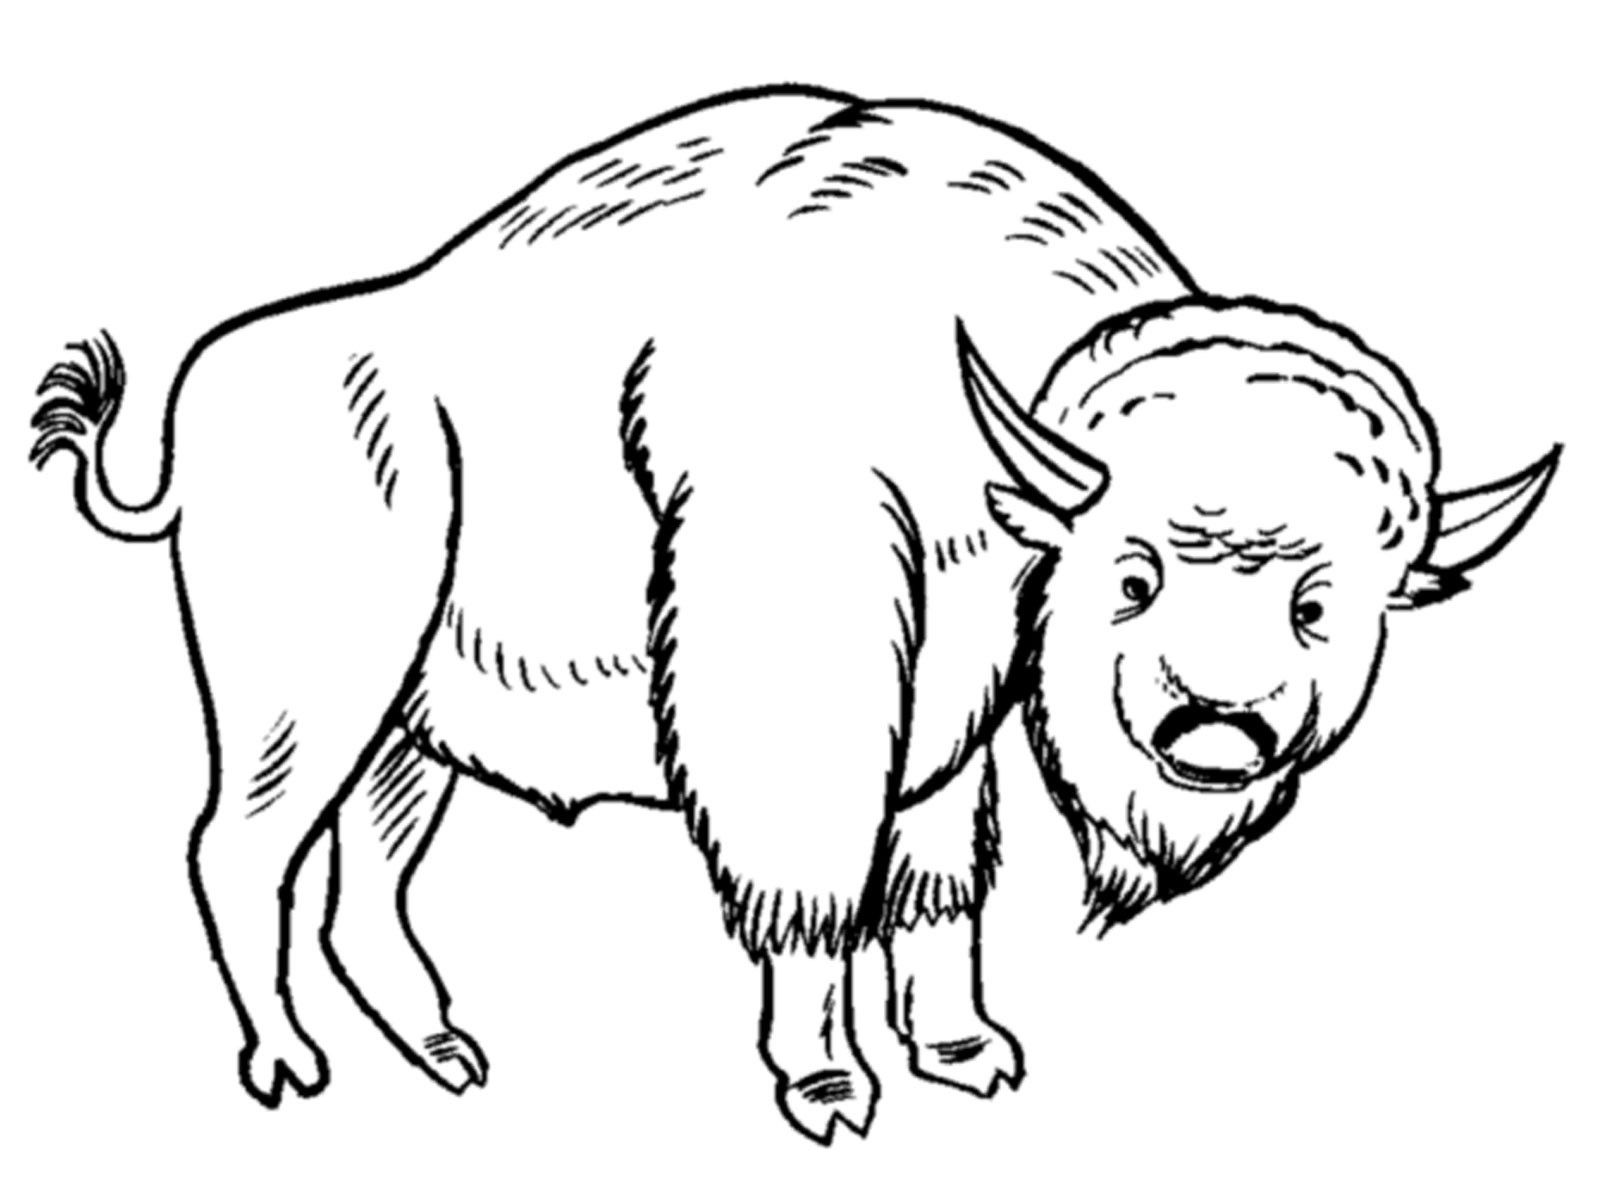 Grassland Animals Coloring Pages From The Thousands Of Images On The Net With Regards To Grassland Animals Coloring Pages We Choices The Top Libraries Along